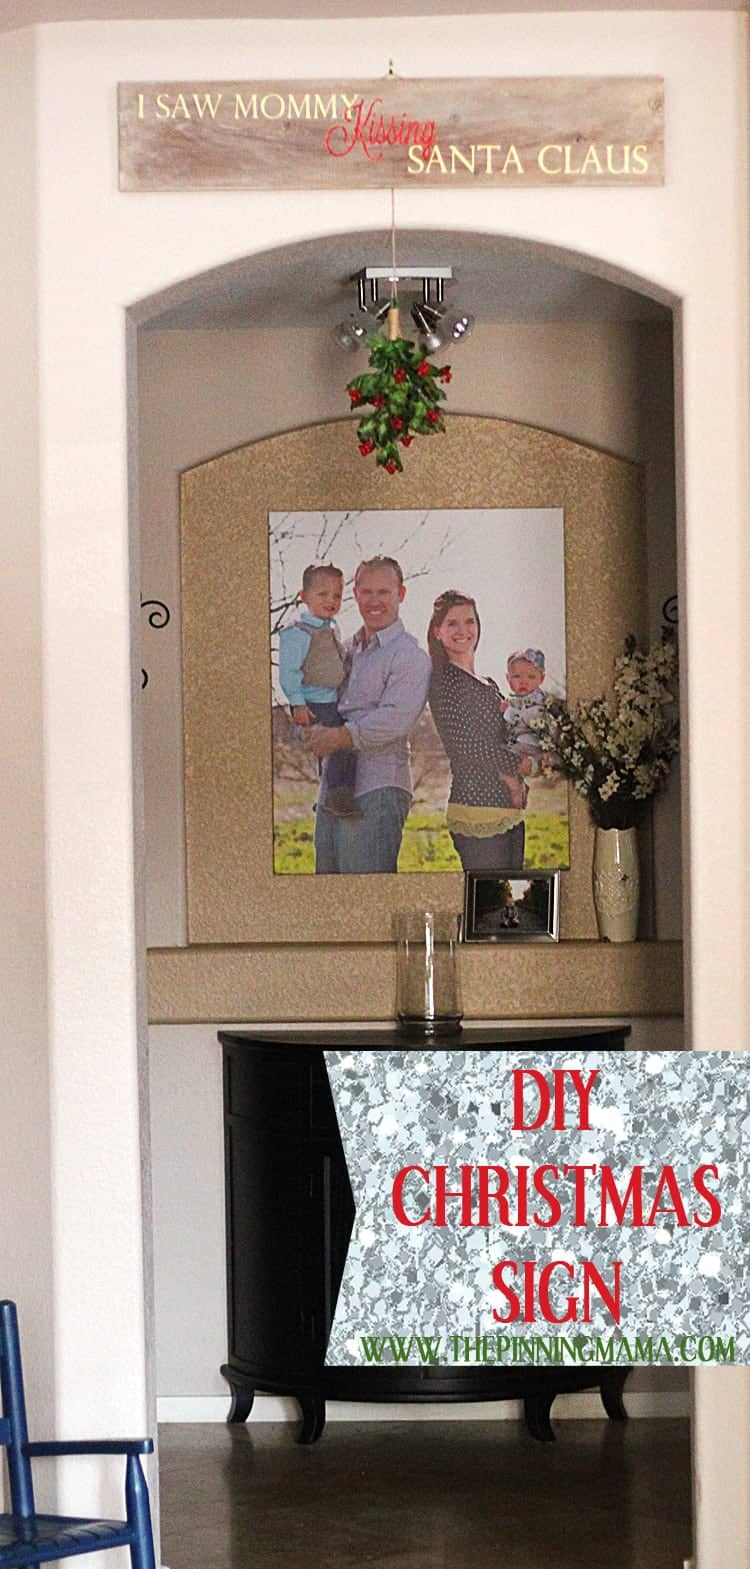 DIY Wooden Christmas Sign: I Saw Mommy Kissing Santa Claus